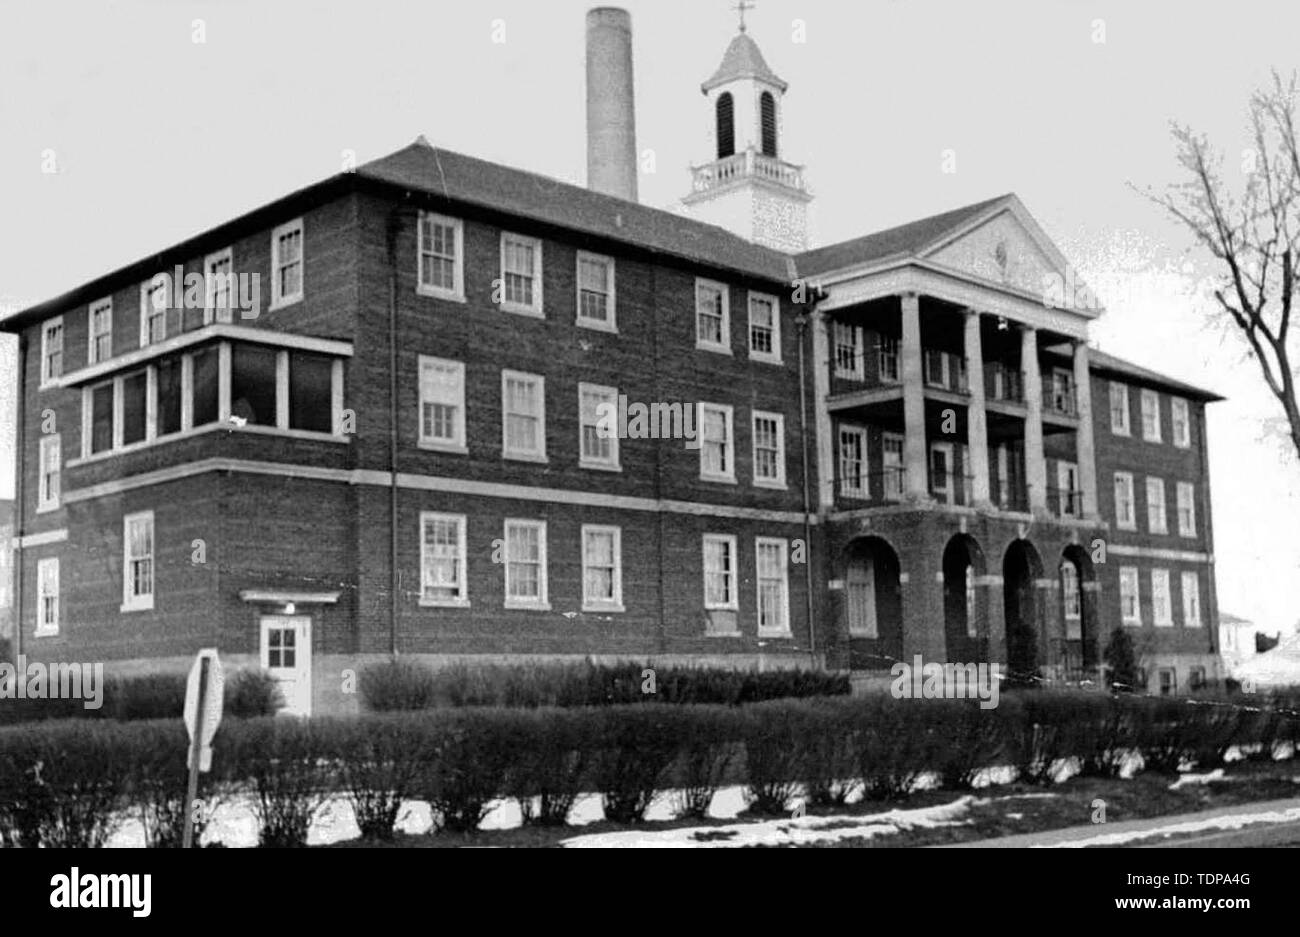 Aug 05, 1925 - Davenport, Iowa, U.S. - French Hall will be demolished next week to make way for a new parking ramp at Bridge Avenue and High Street. Maternal Health Center..(Credit Image: © Chris Delmas/ZUMA Wire) - Stock Image